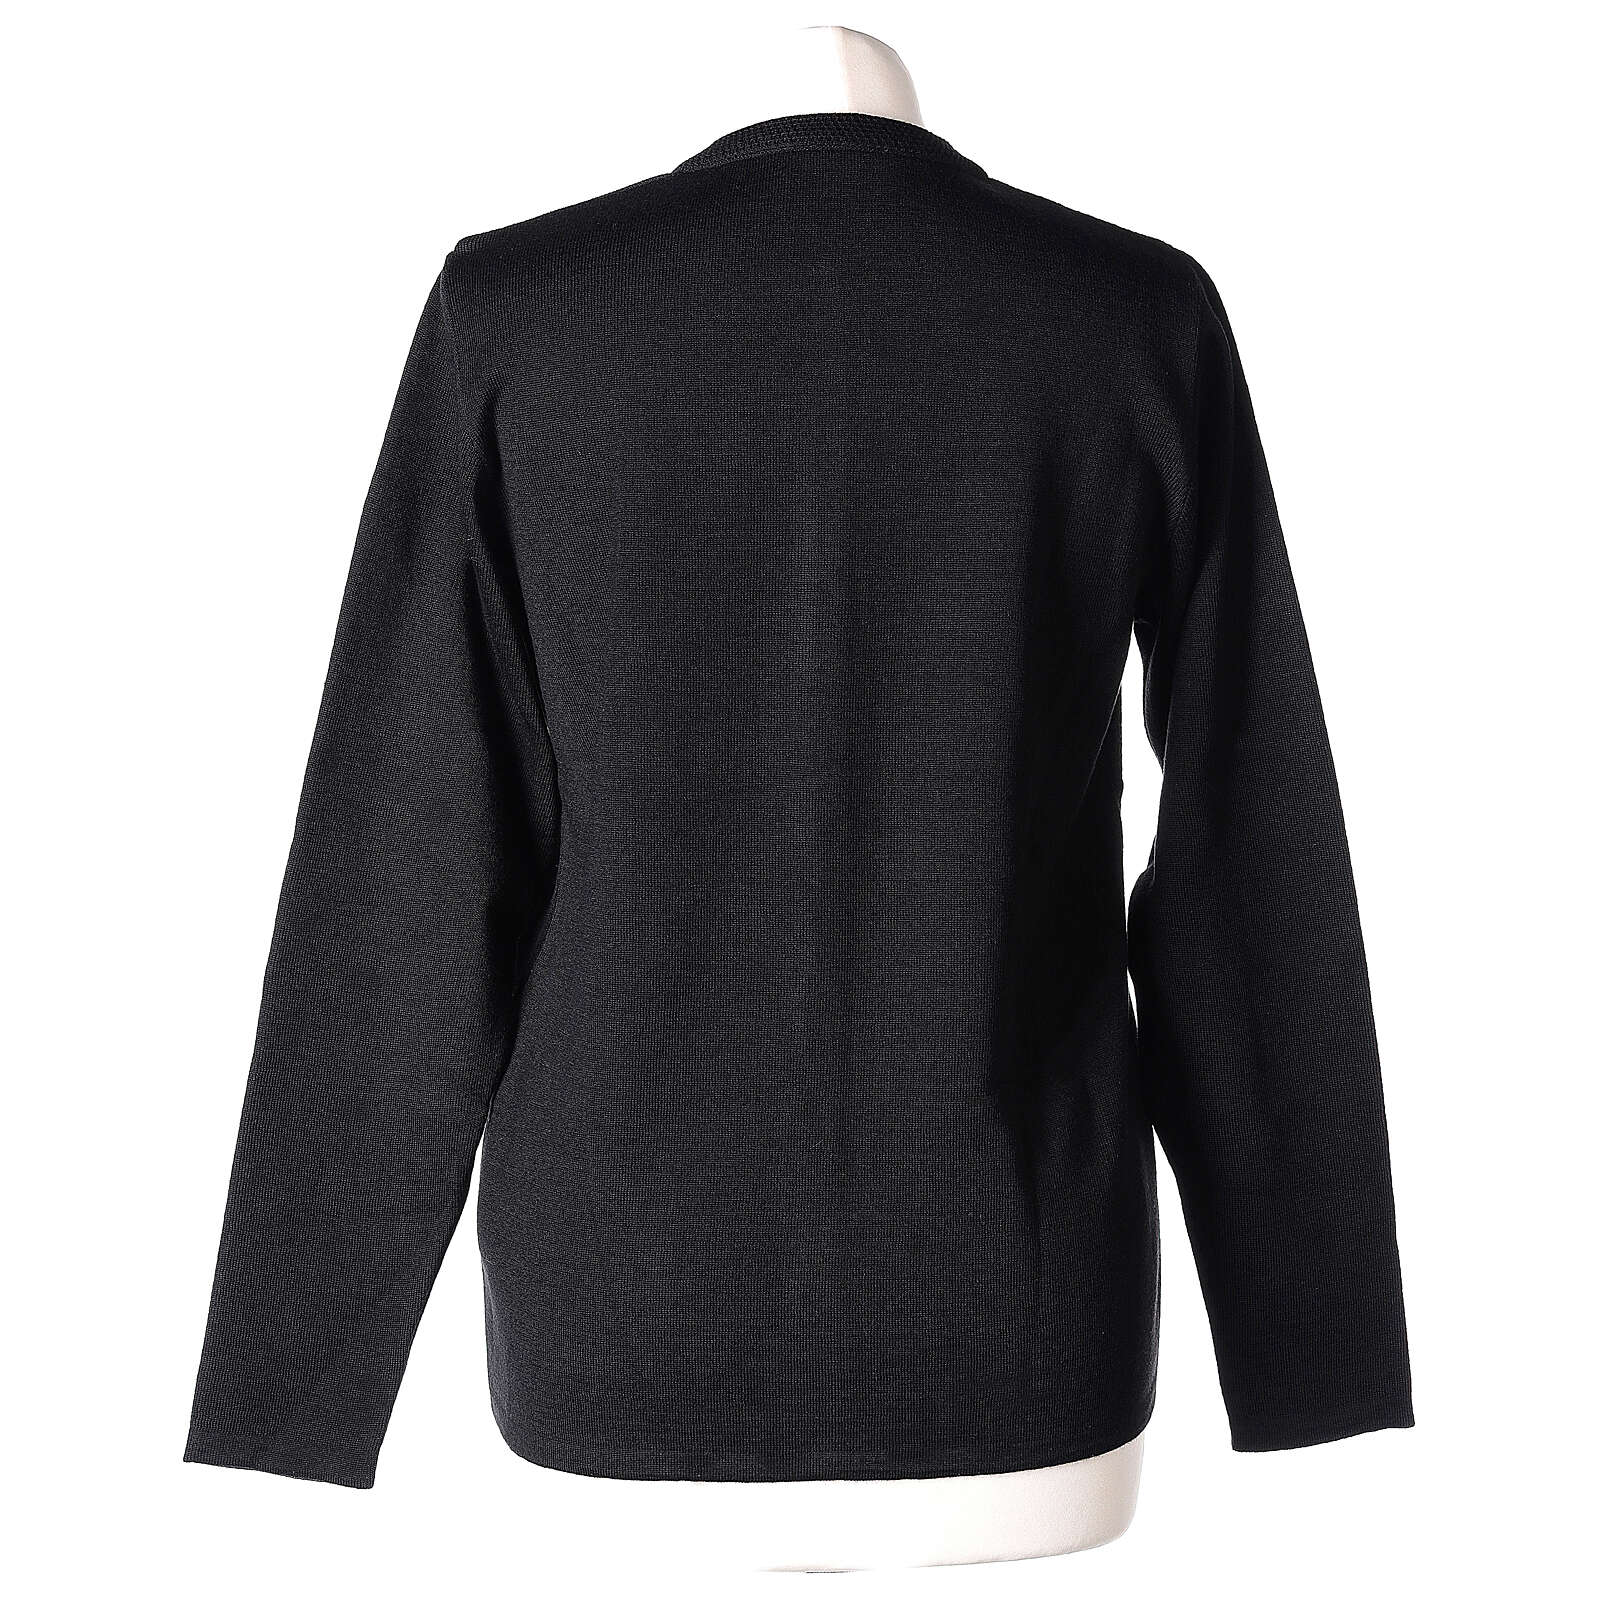 Nun black crew neck cardigan with pockets PLUS SIZES 50% merino wool 50% acrylic In Primis 4